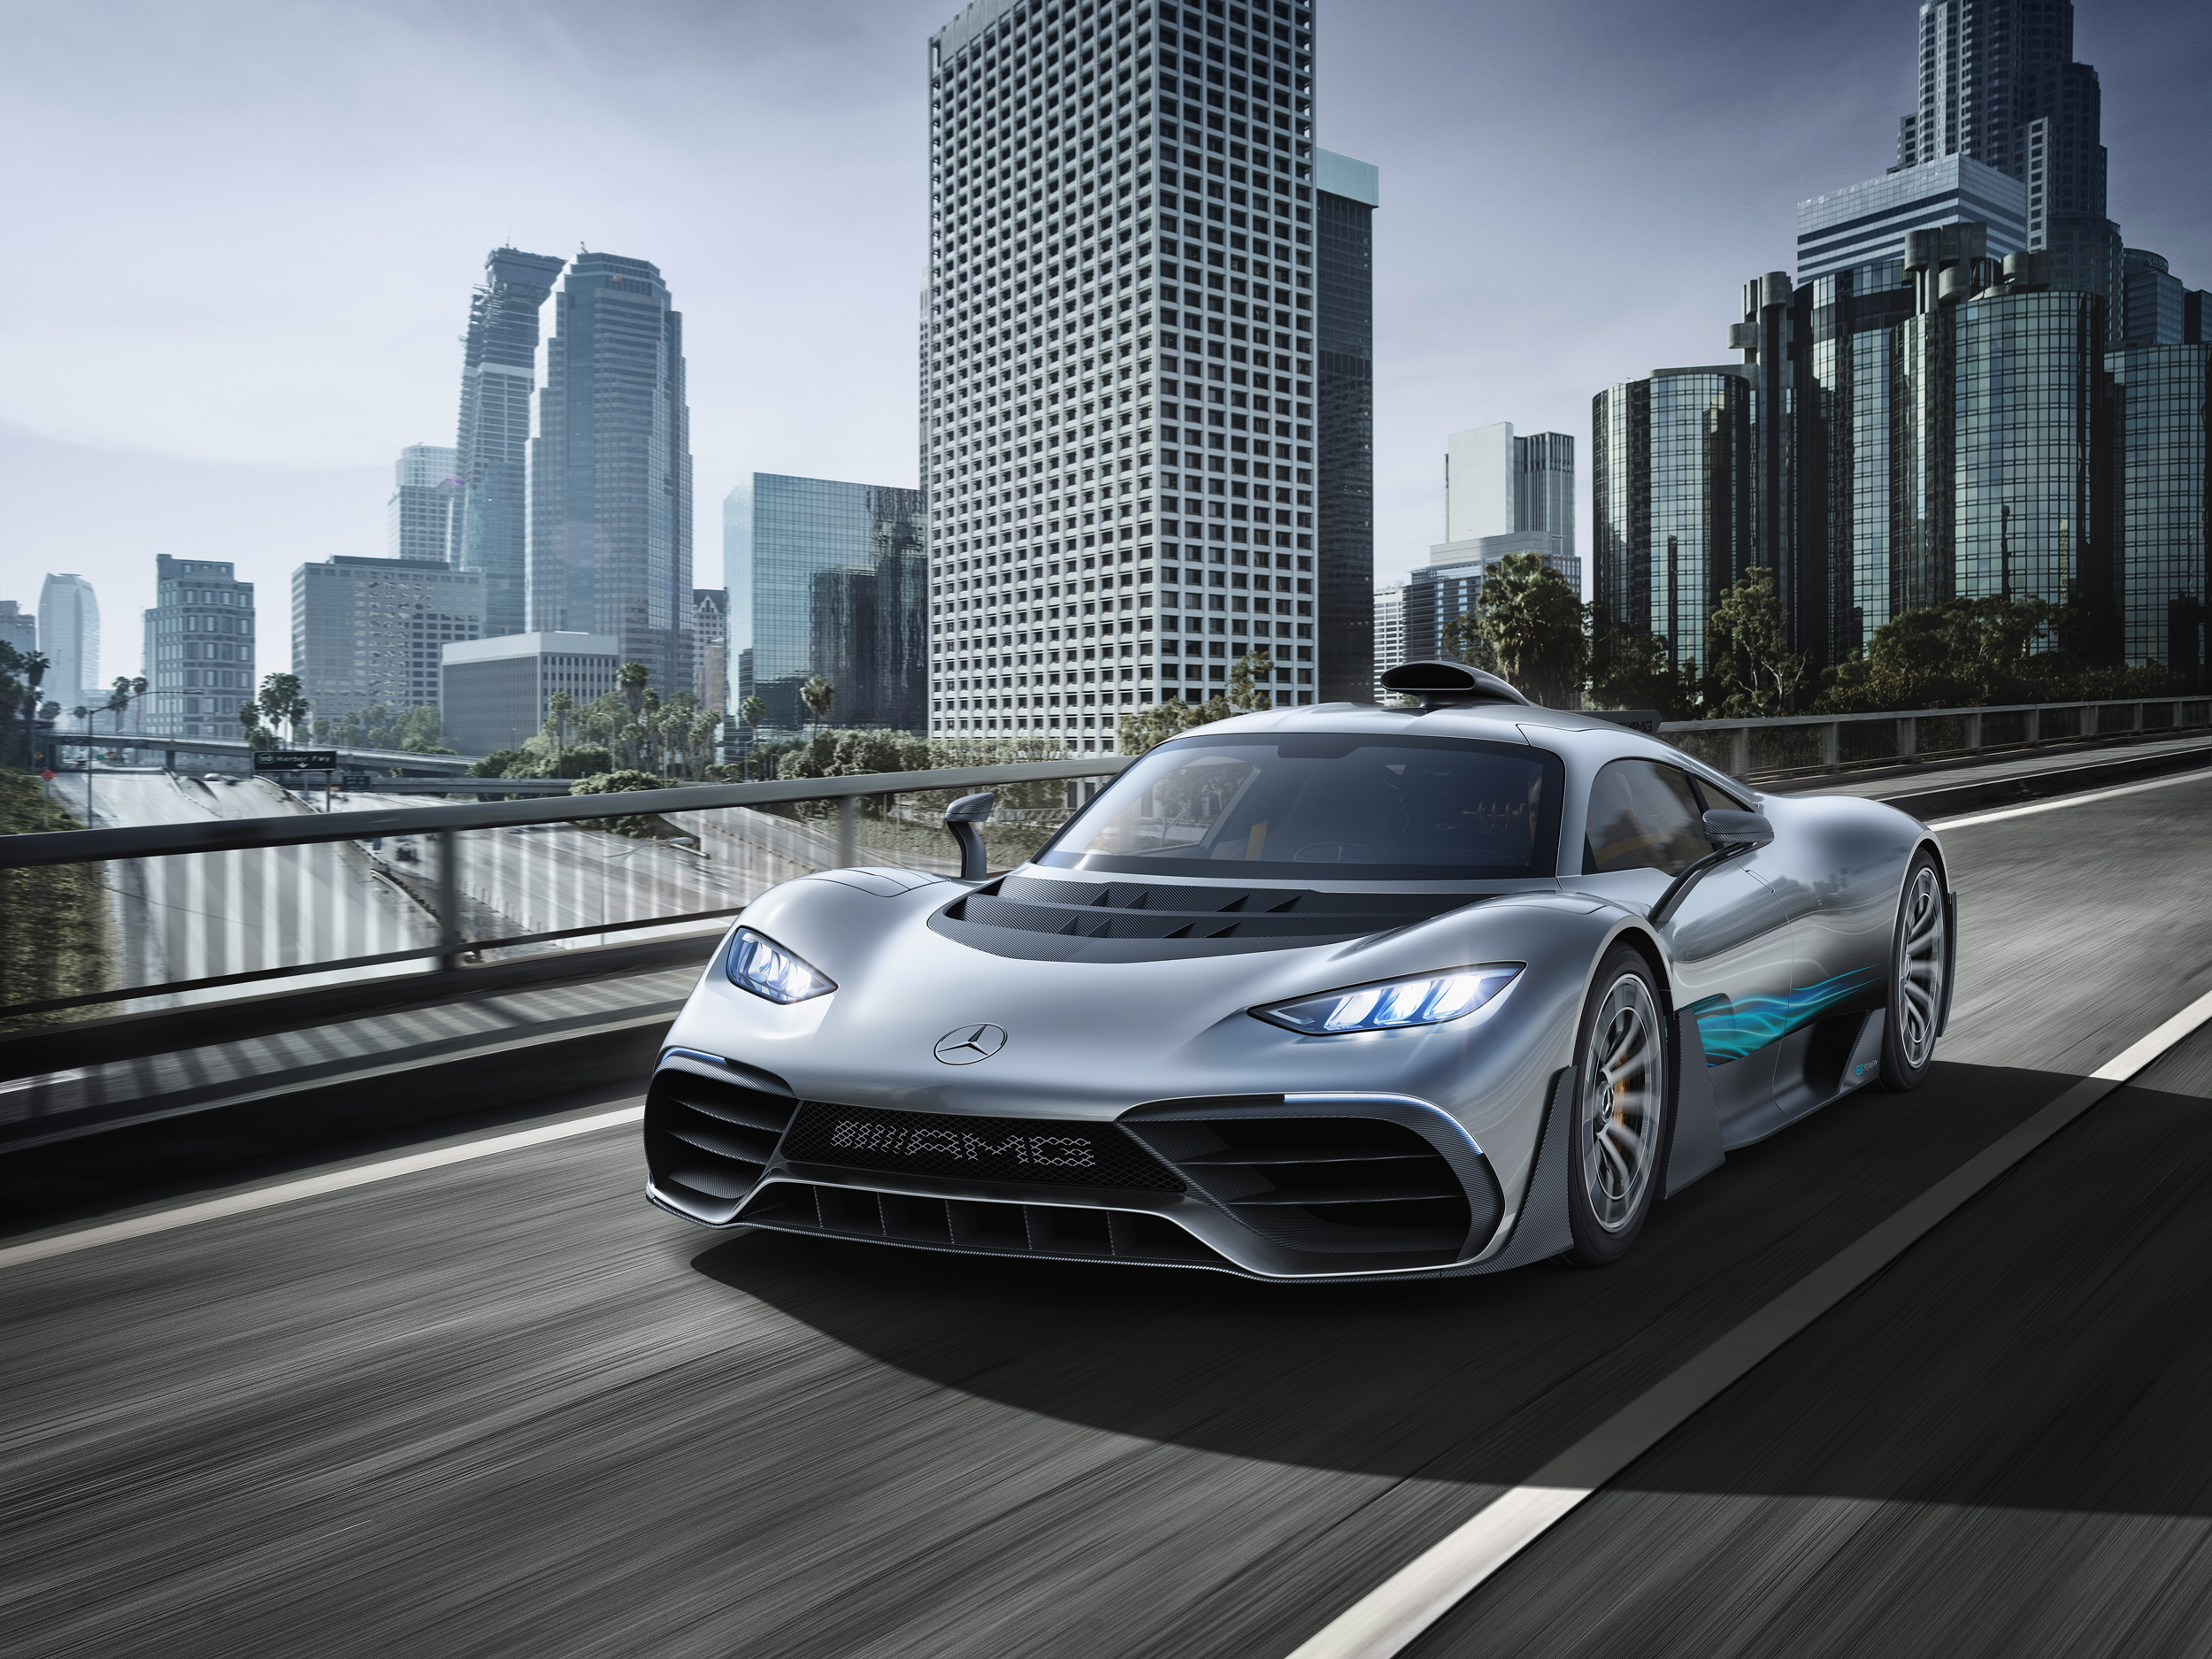 The Mercedes Amg Project One Showcar Will Make Your Dreams Come